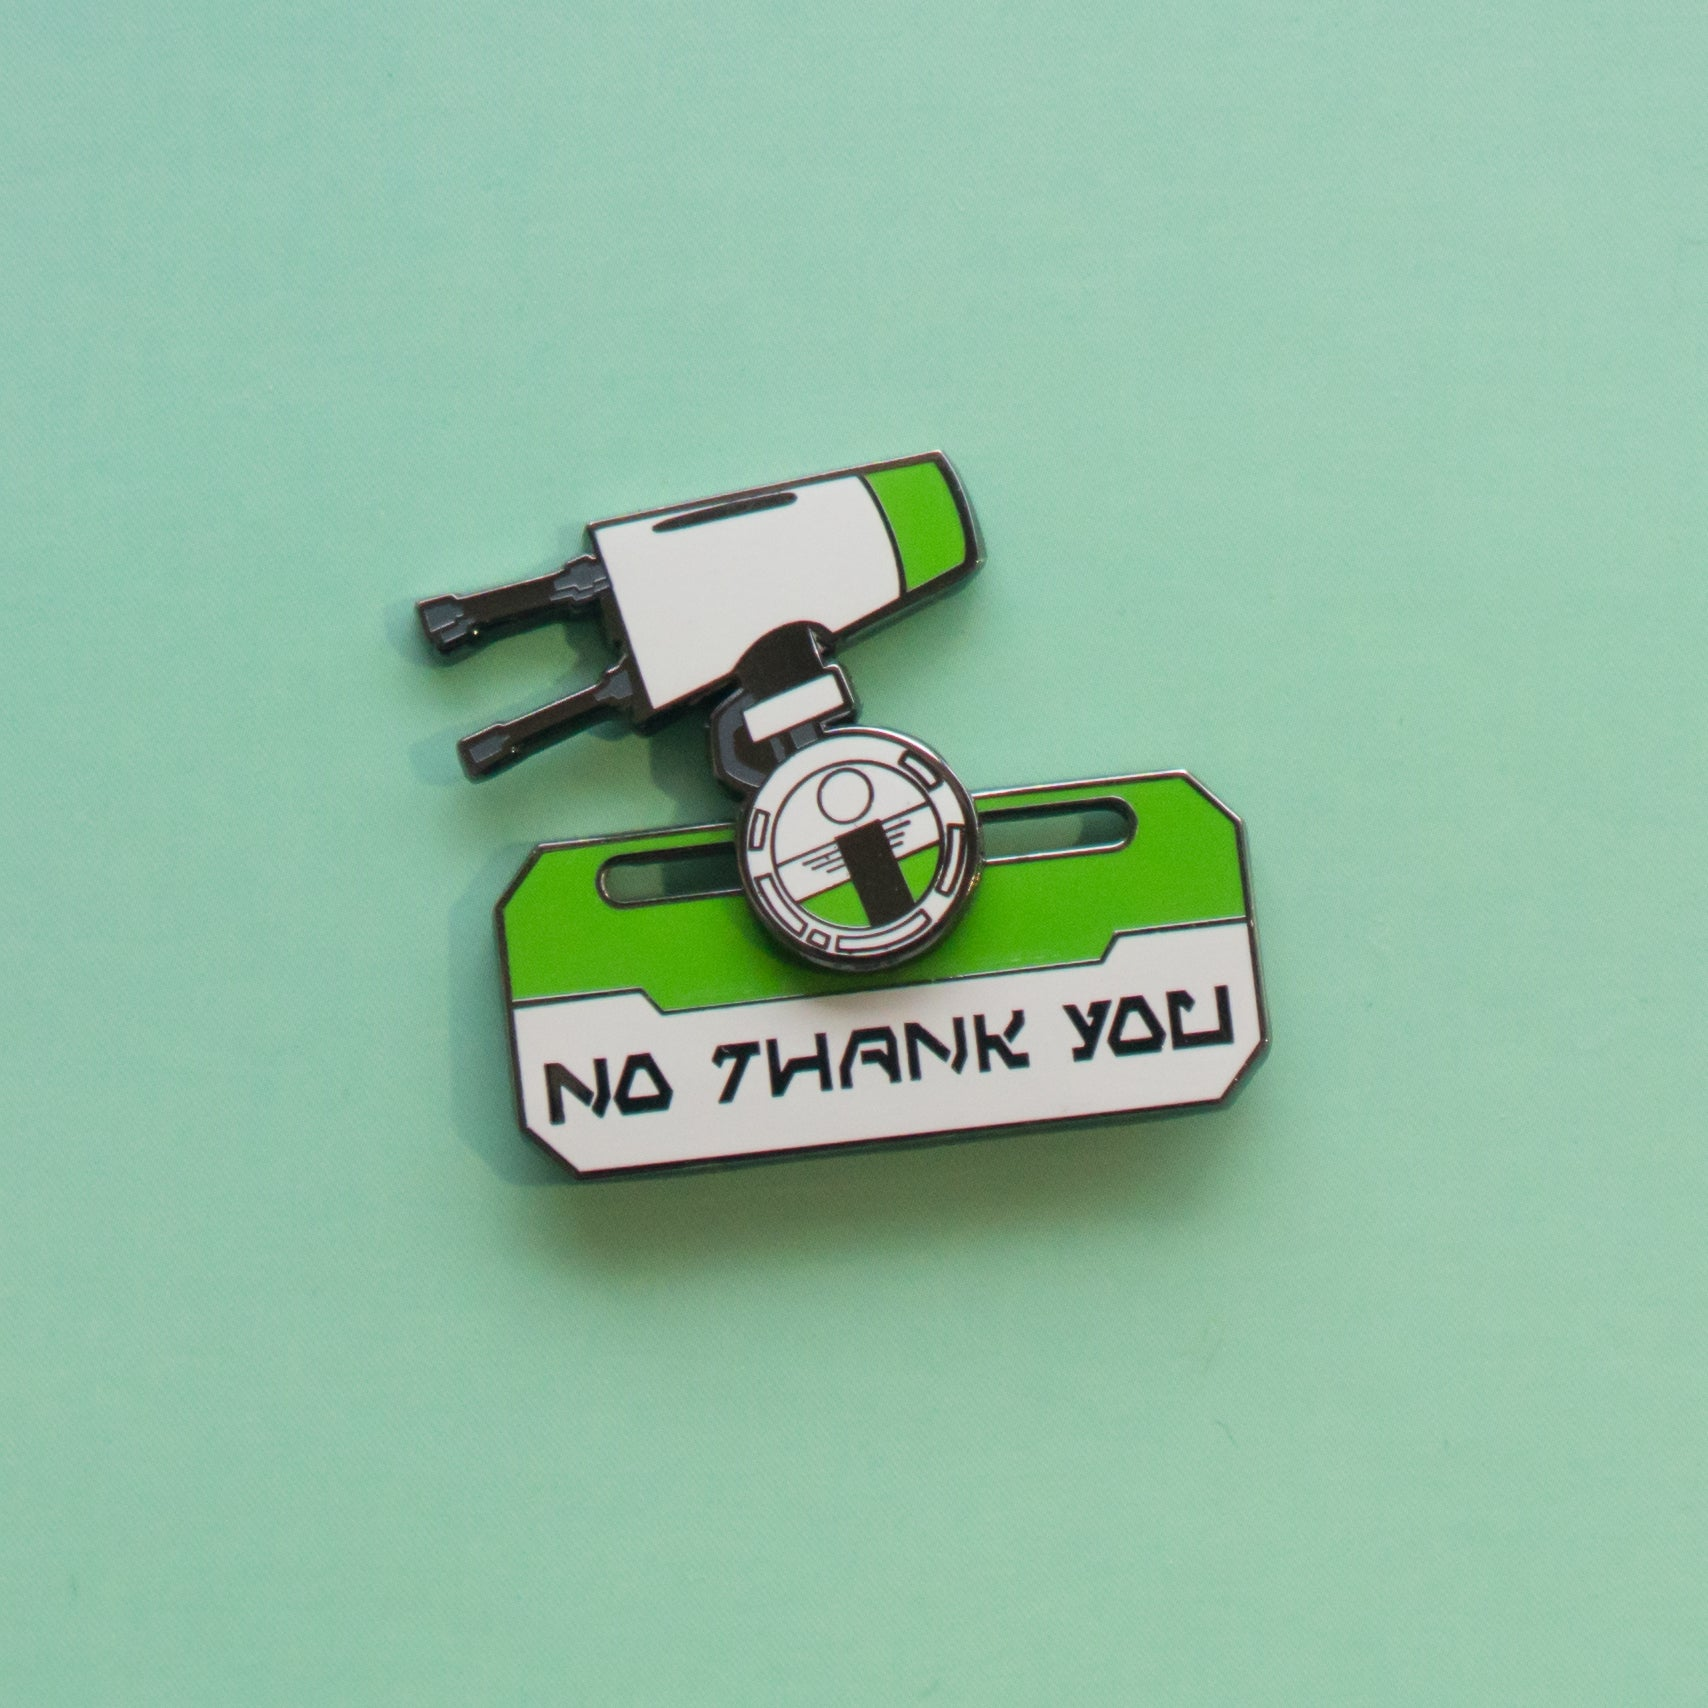 NO THANK YOU PIN